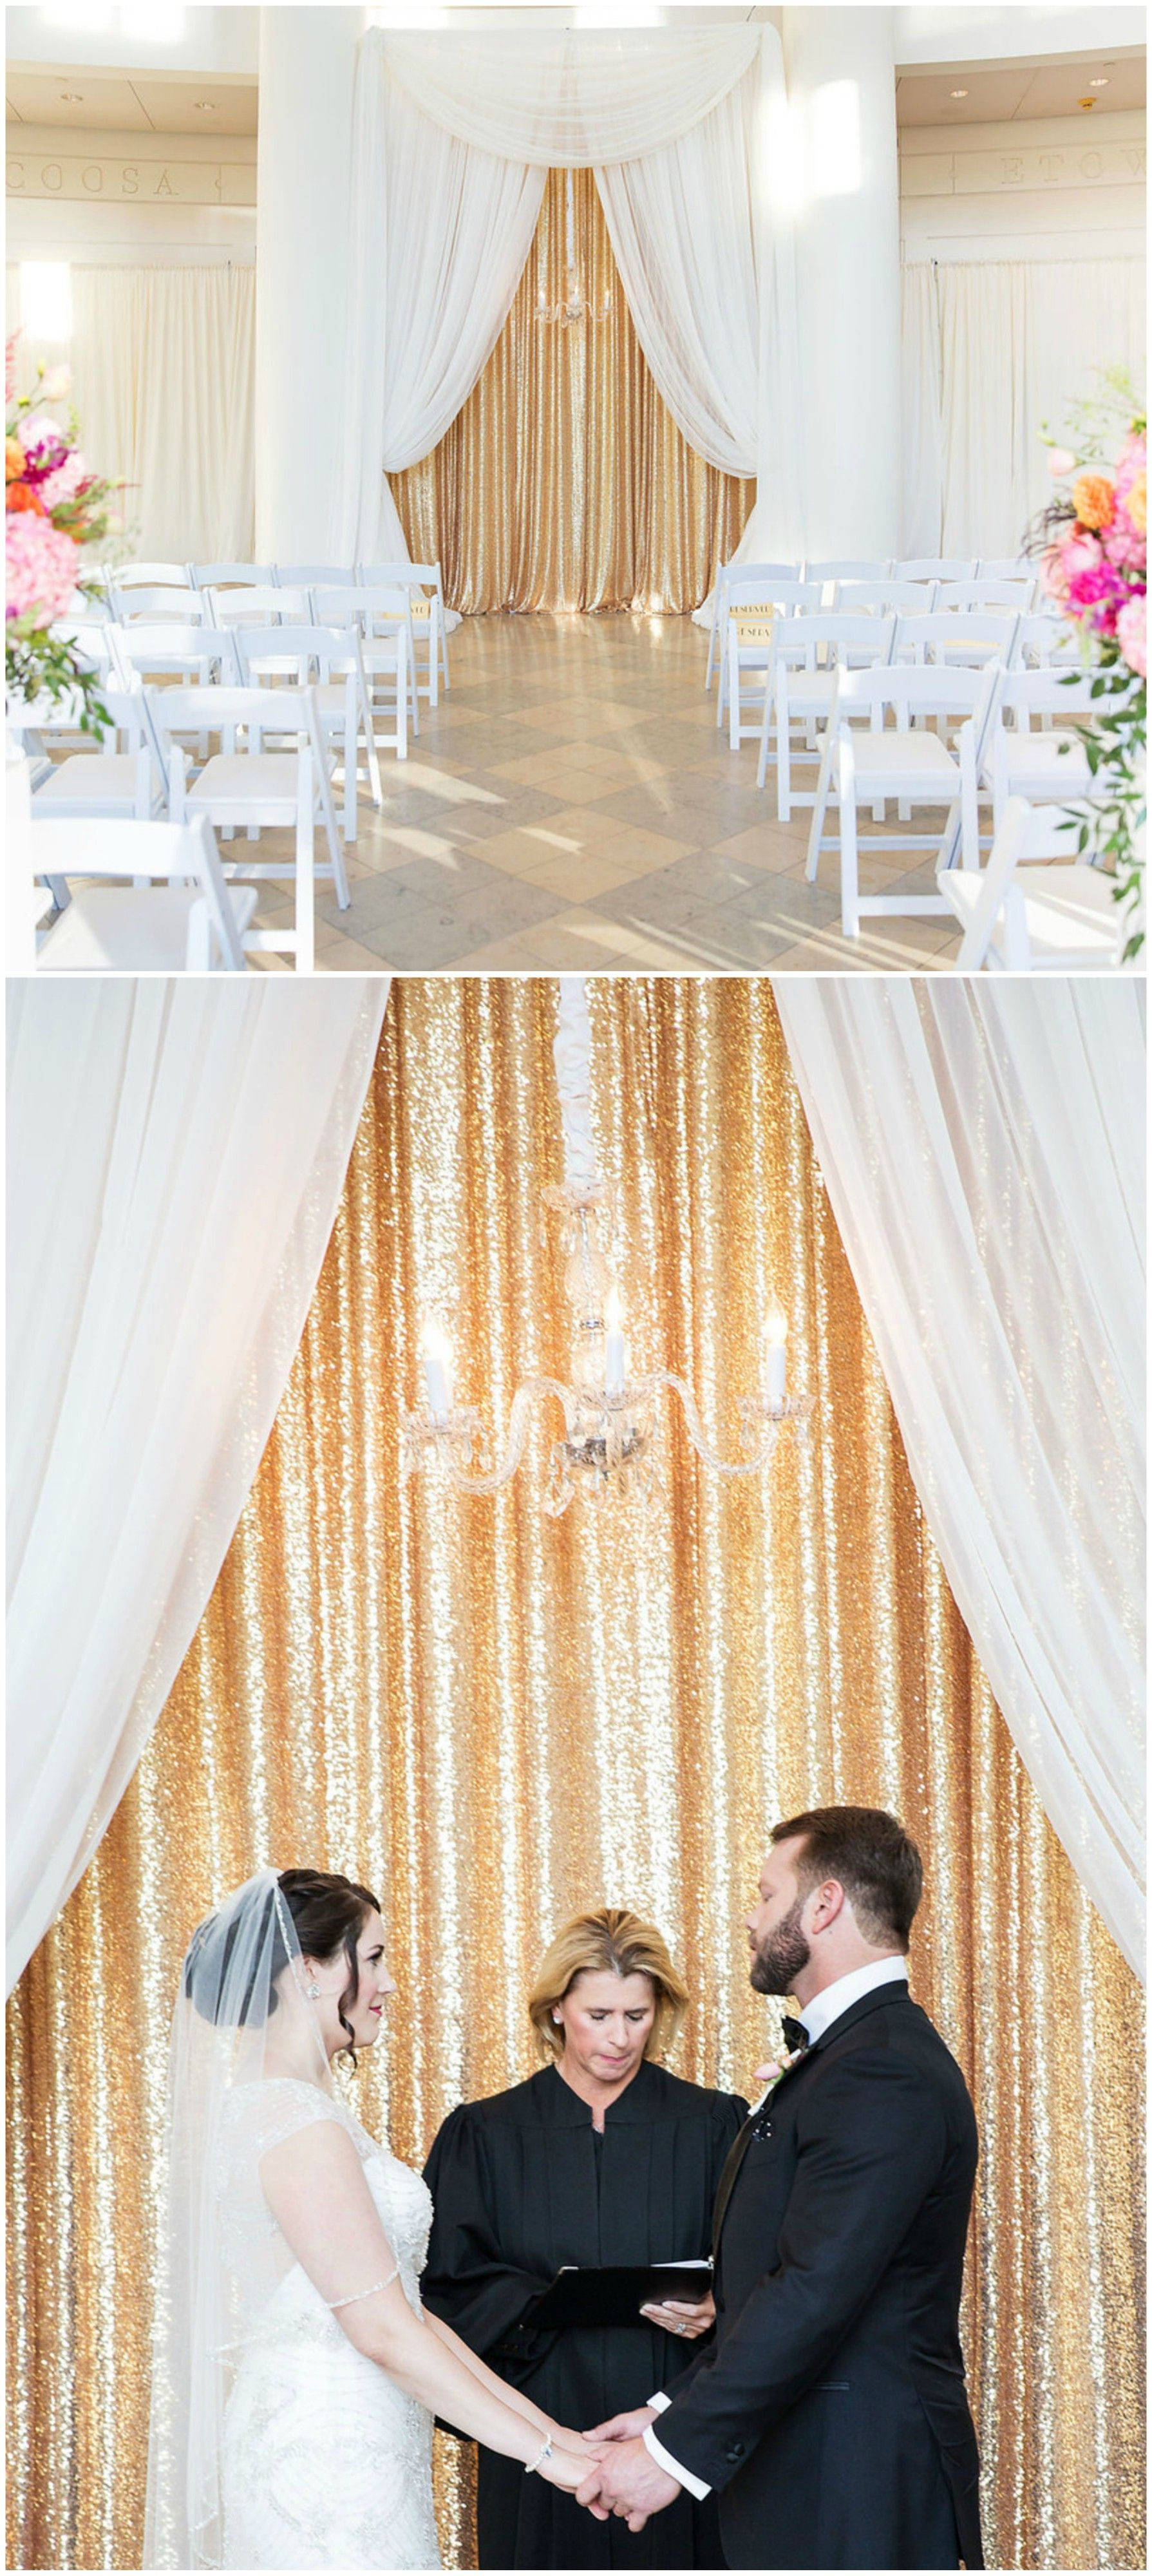 Glamorous indoor wedding ceremony decor, gold glitter backdrop, chandelier,  whi… | Indoor wedding ceremonies, Ceremony backdrop indoor, Wedding  ceremony decorations